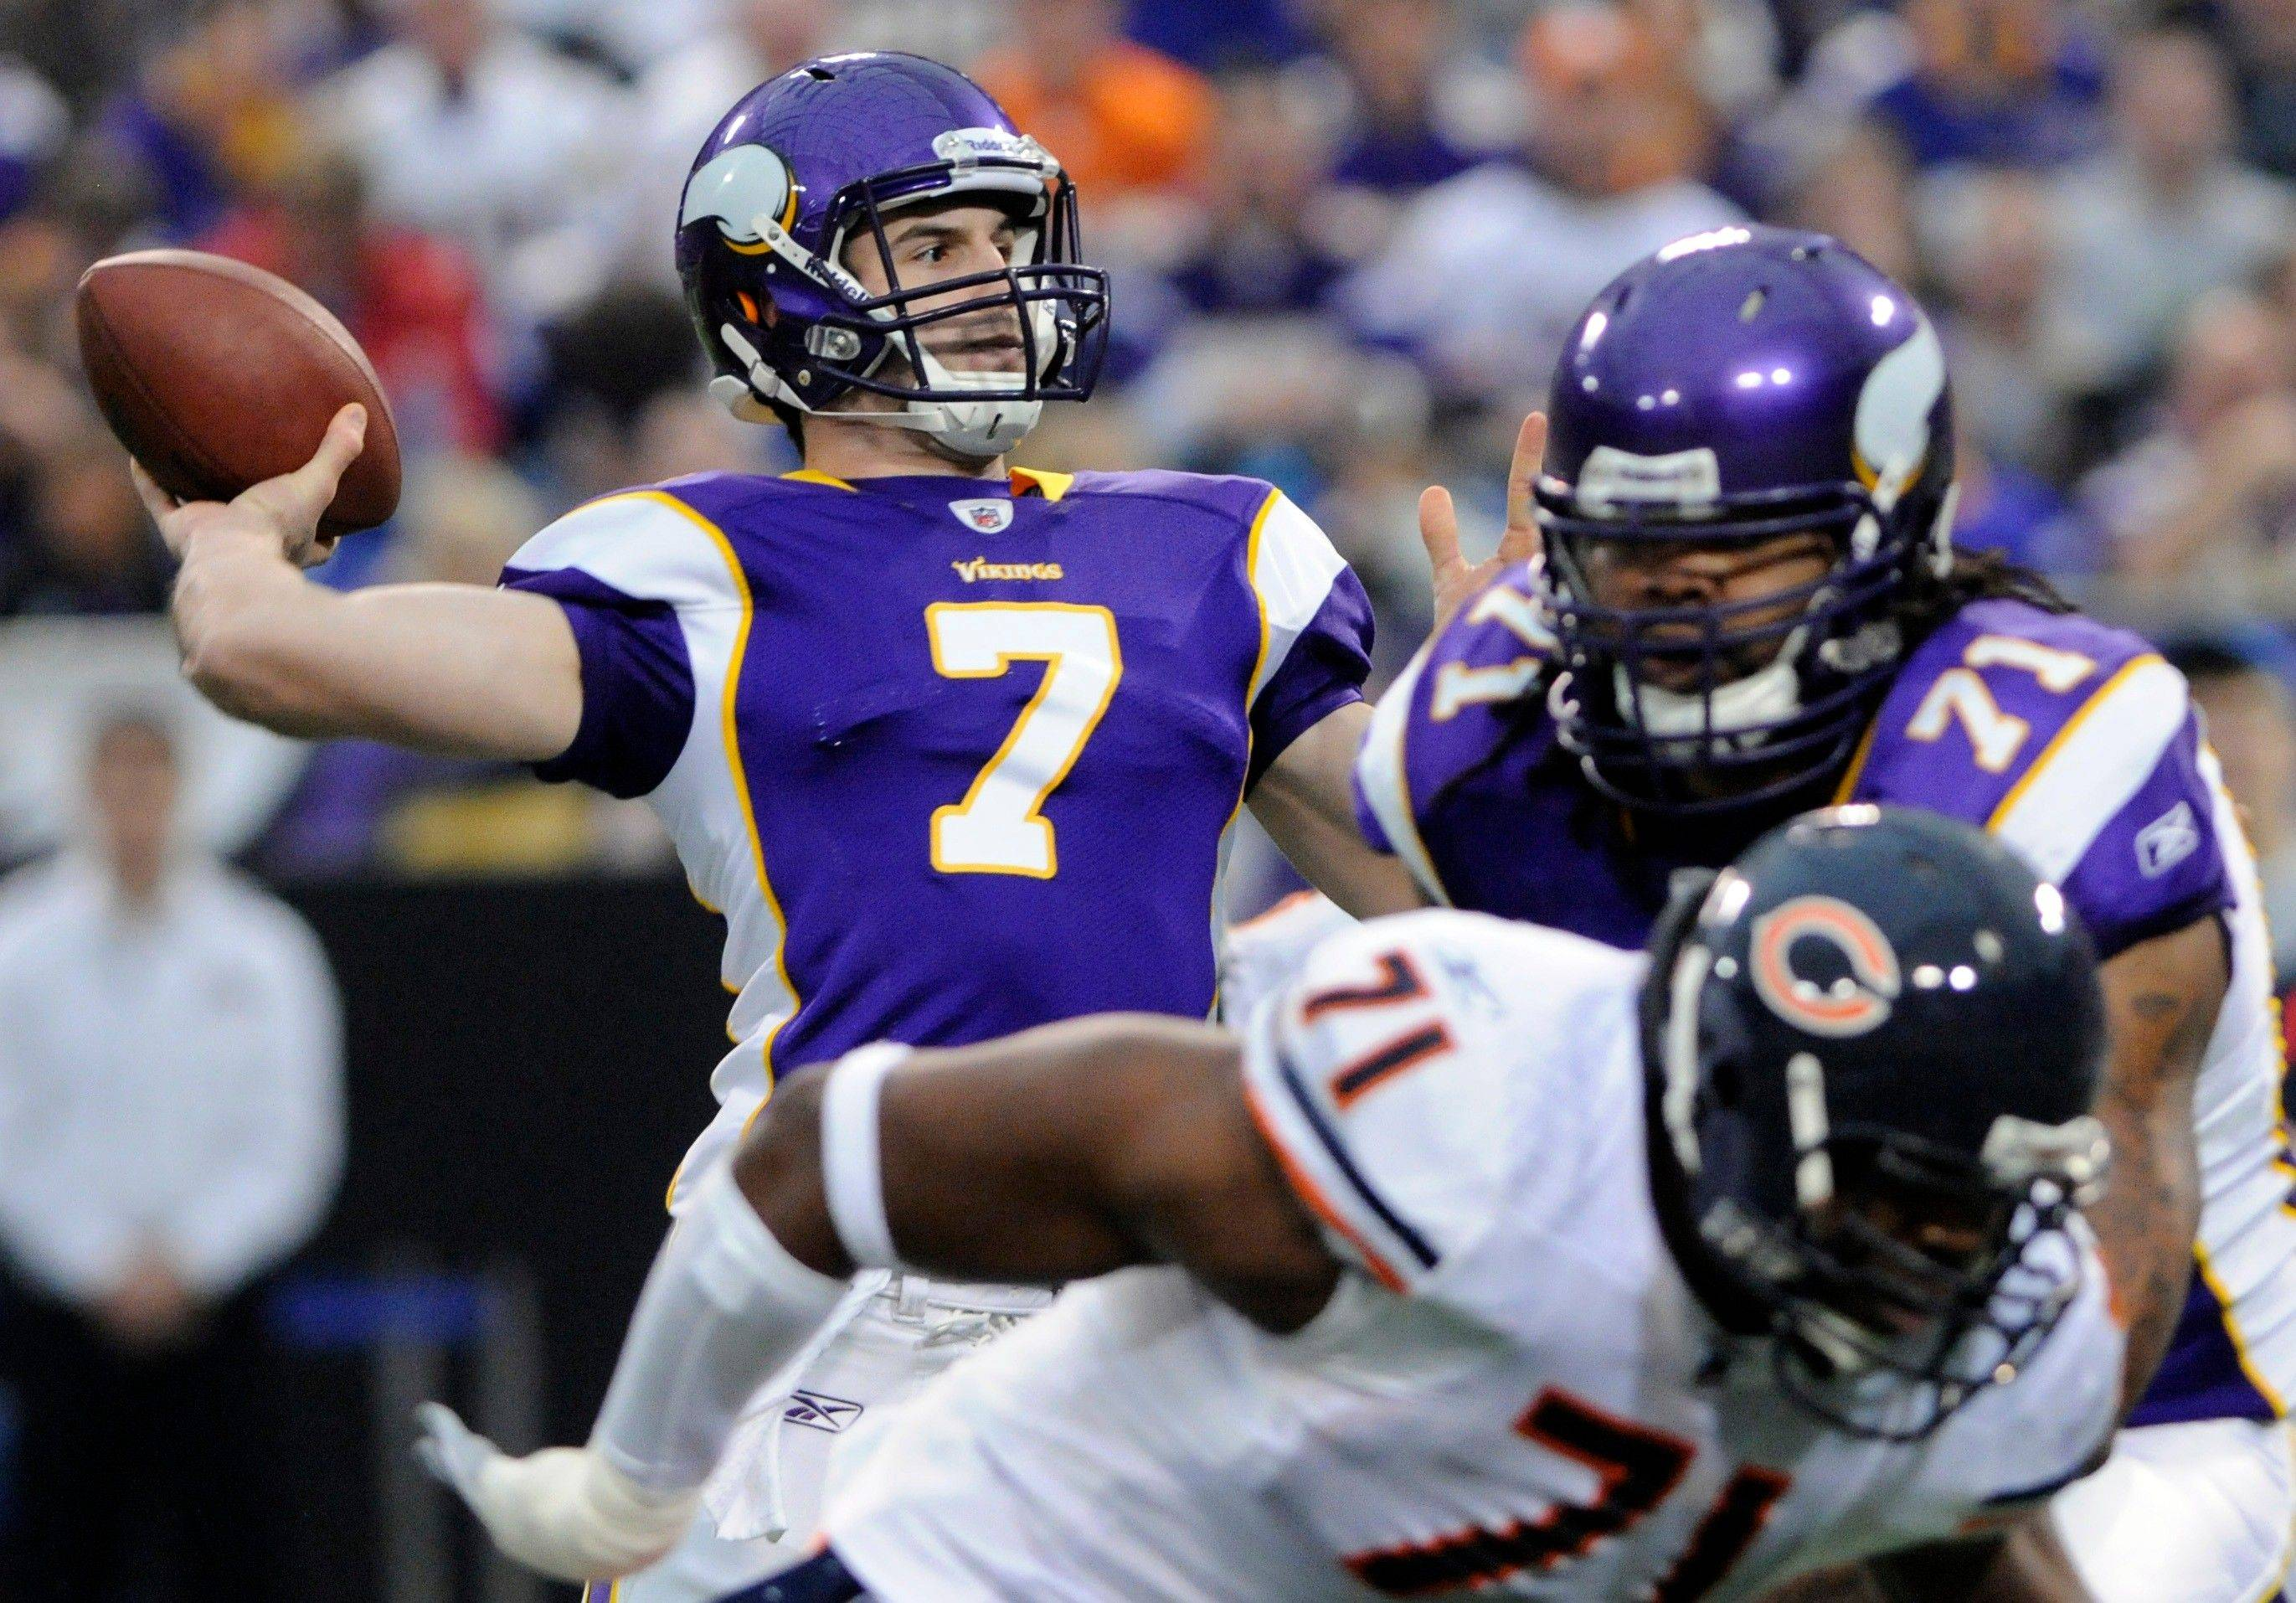 Minnesota Vikings quarterback Christian Ponder throws a pass in the first half.